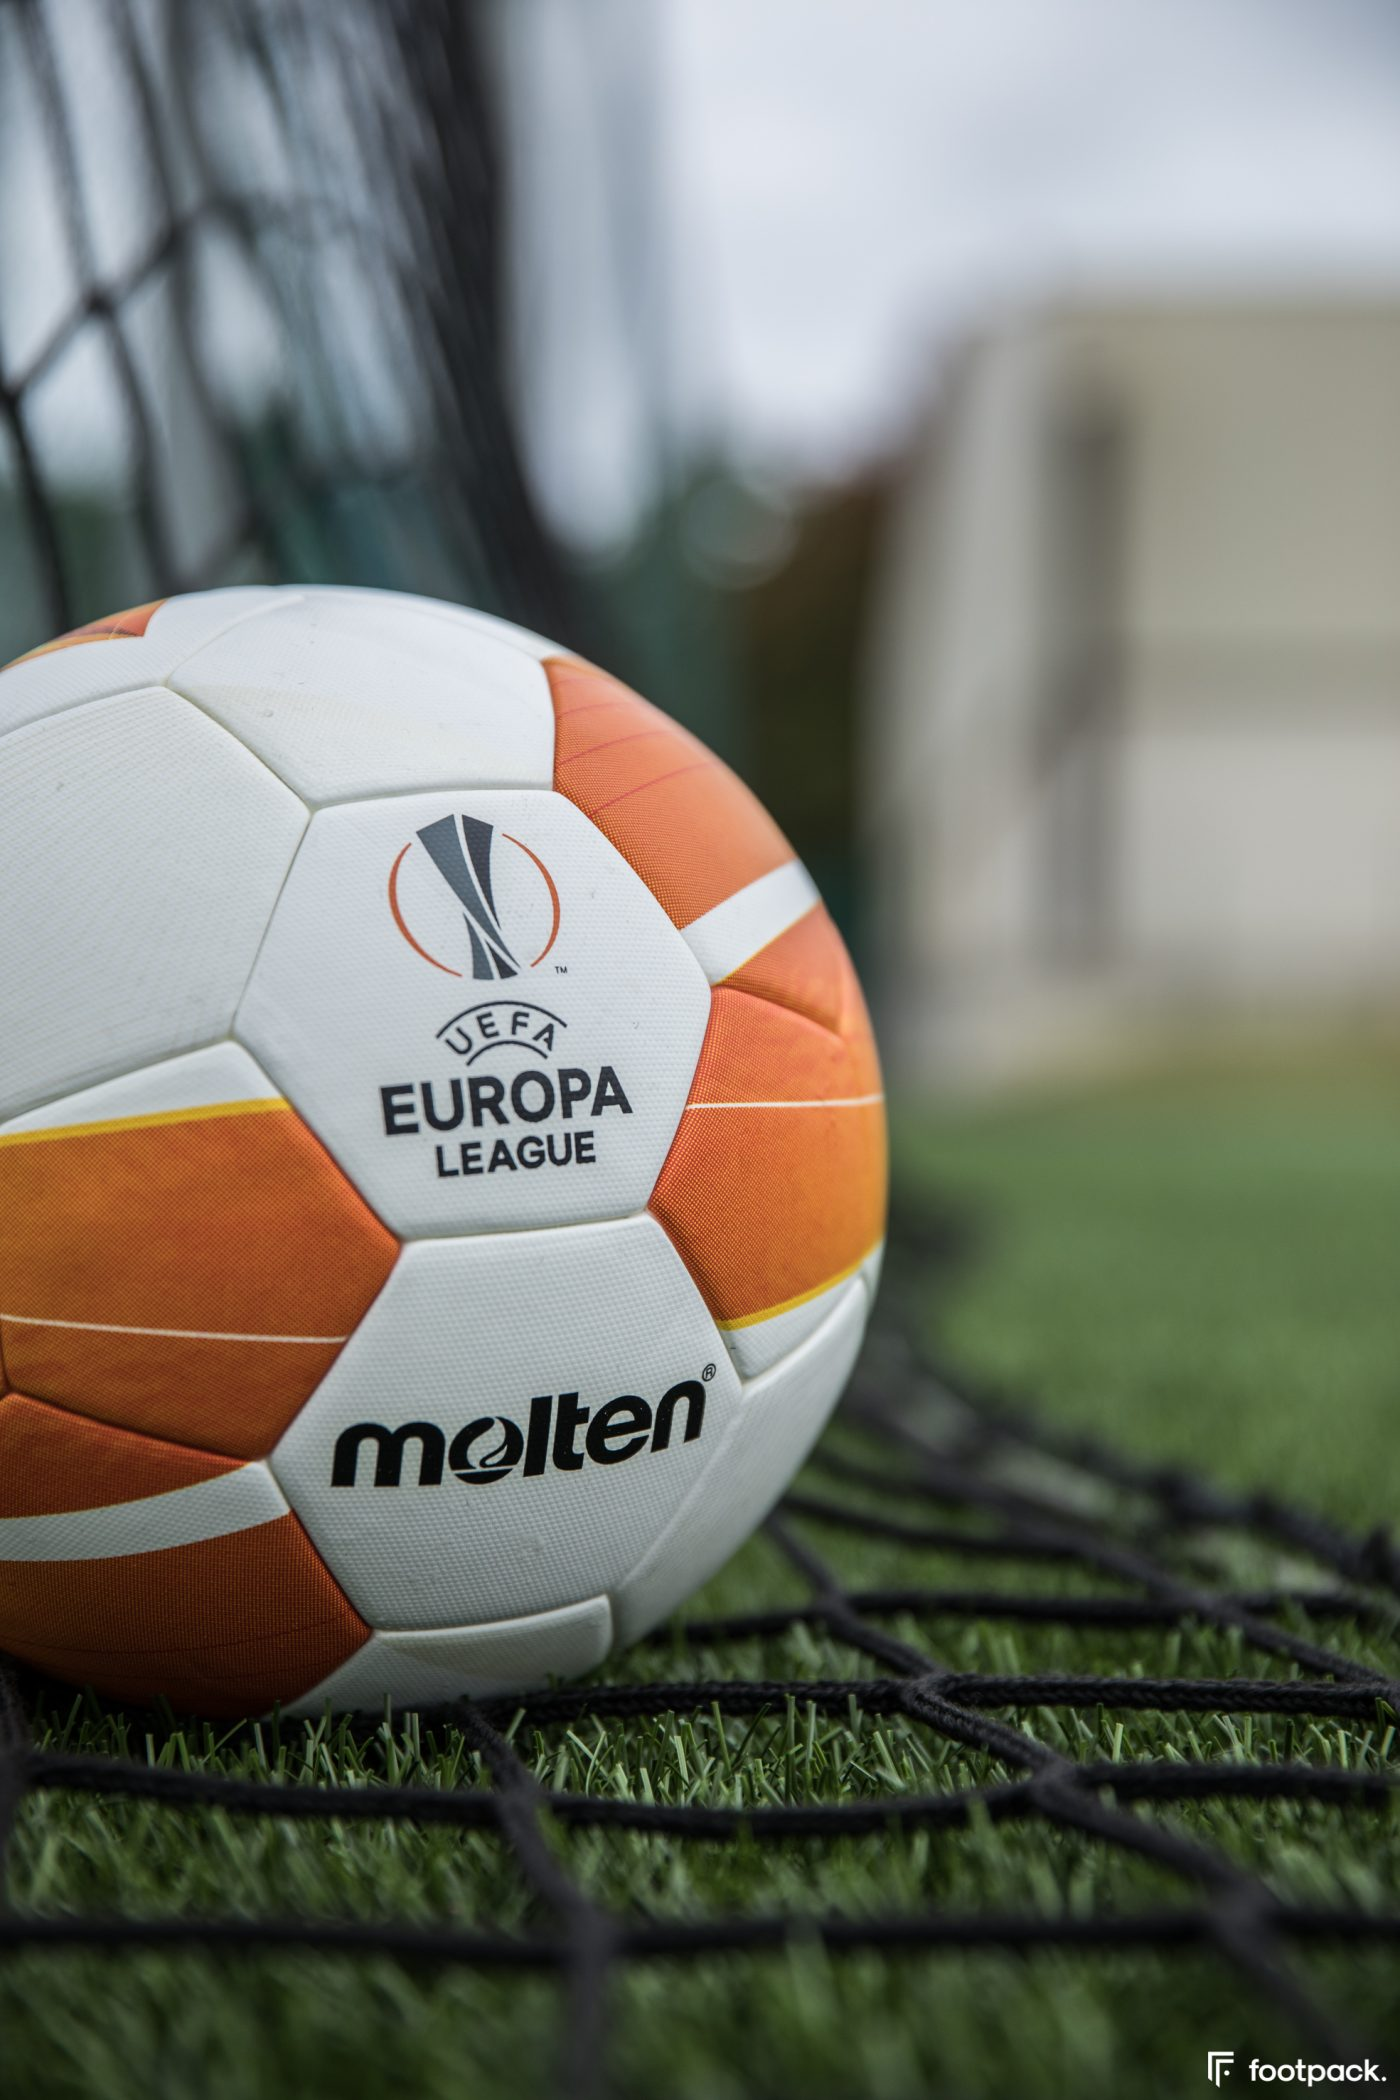 molten-europa-league-conference-league-1